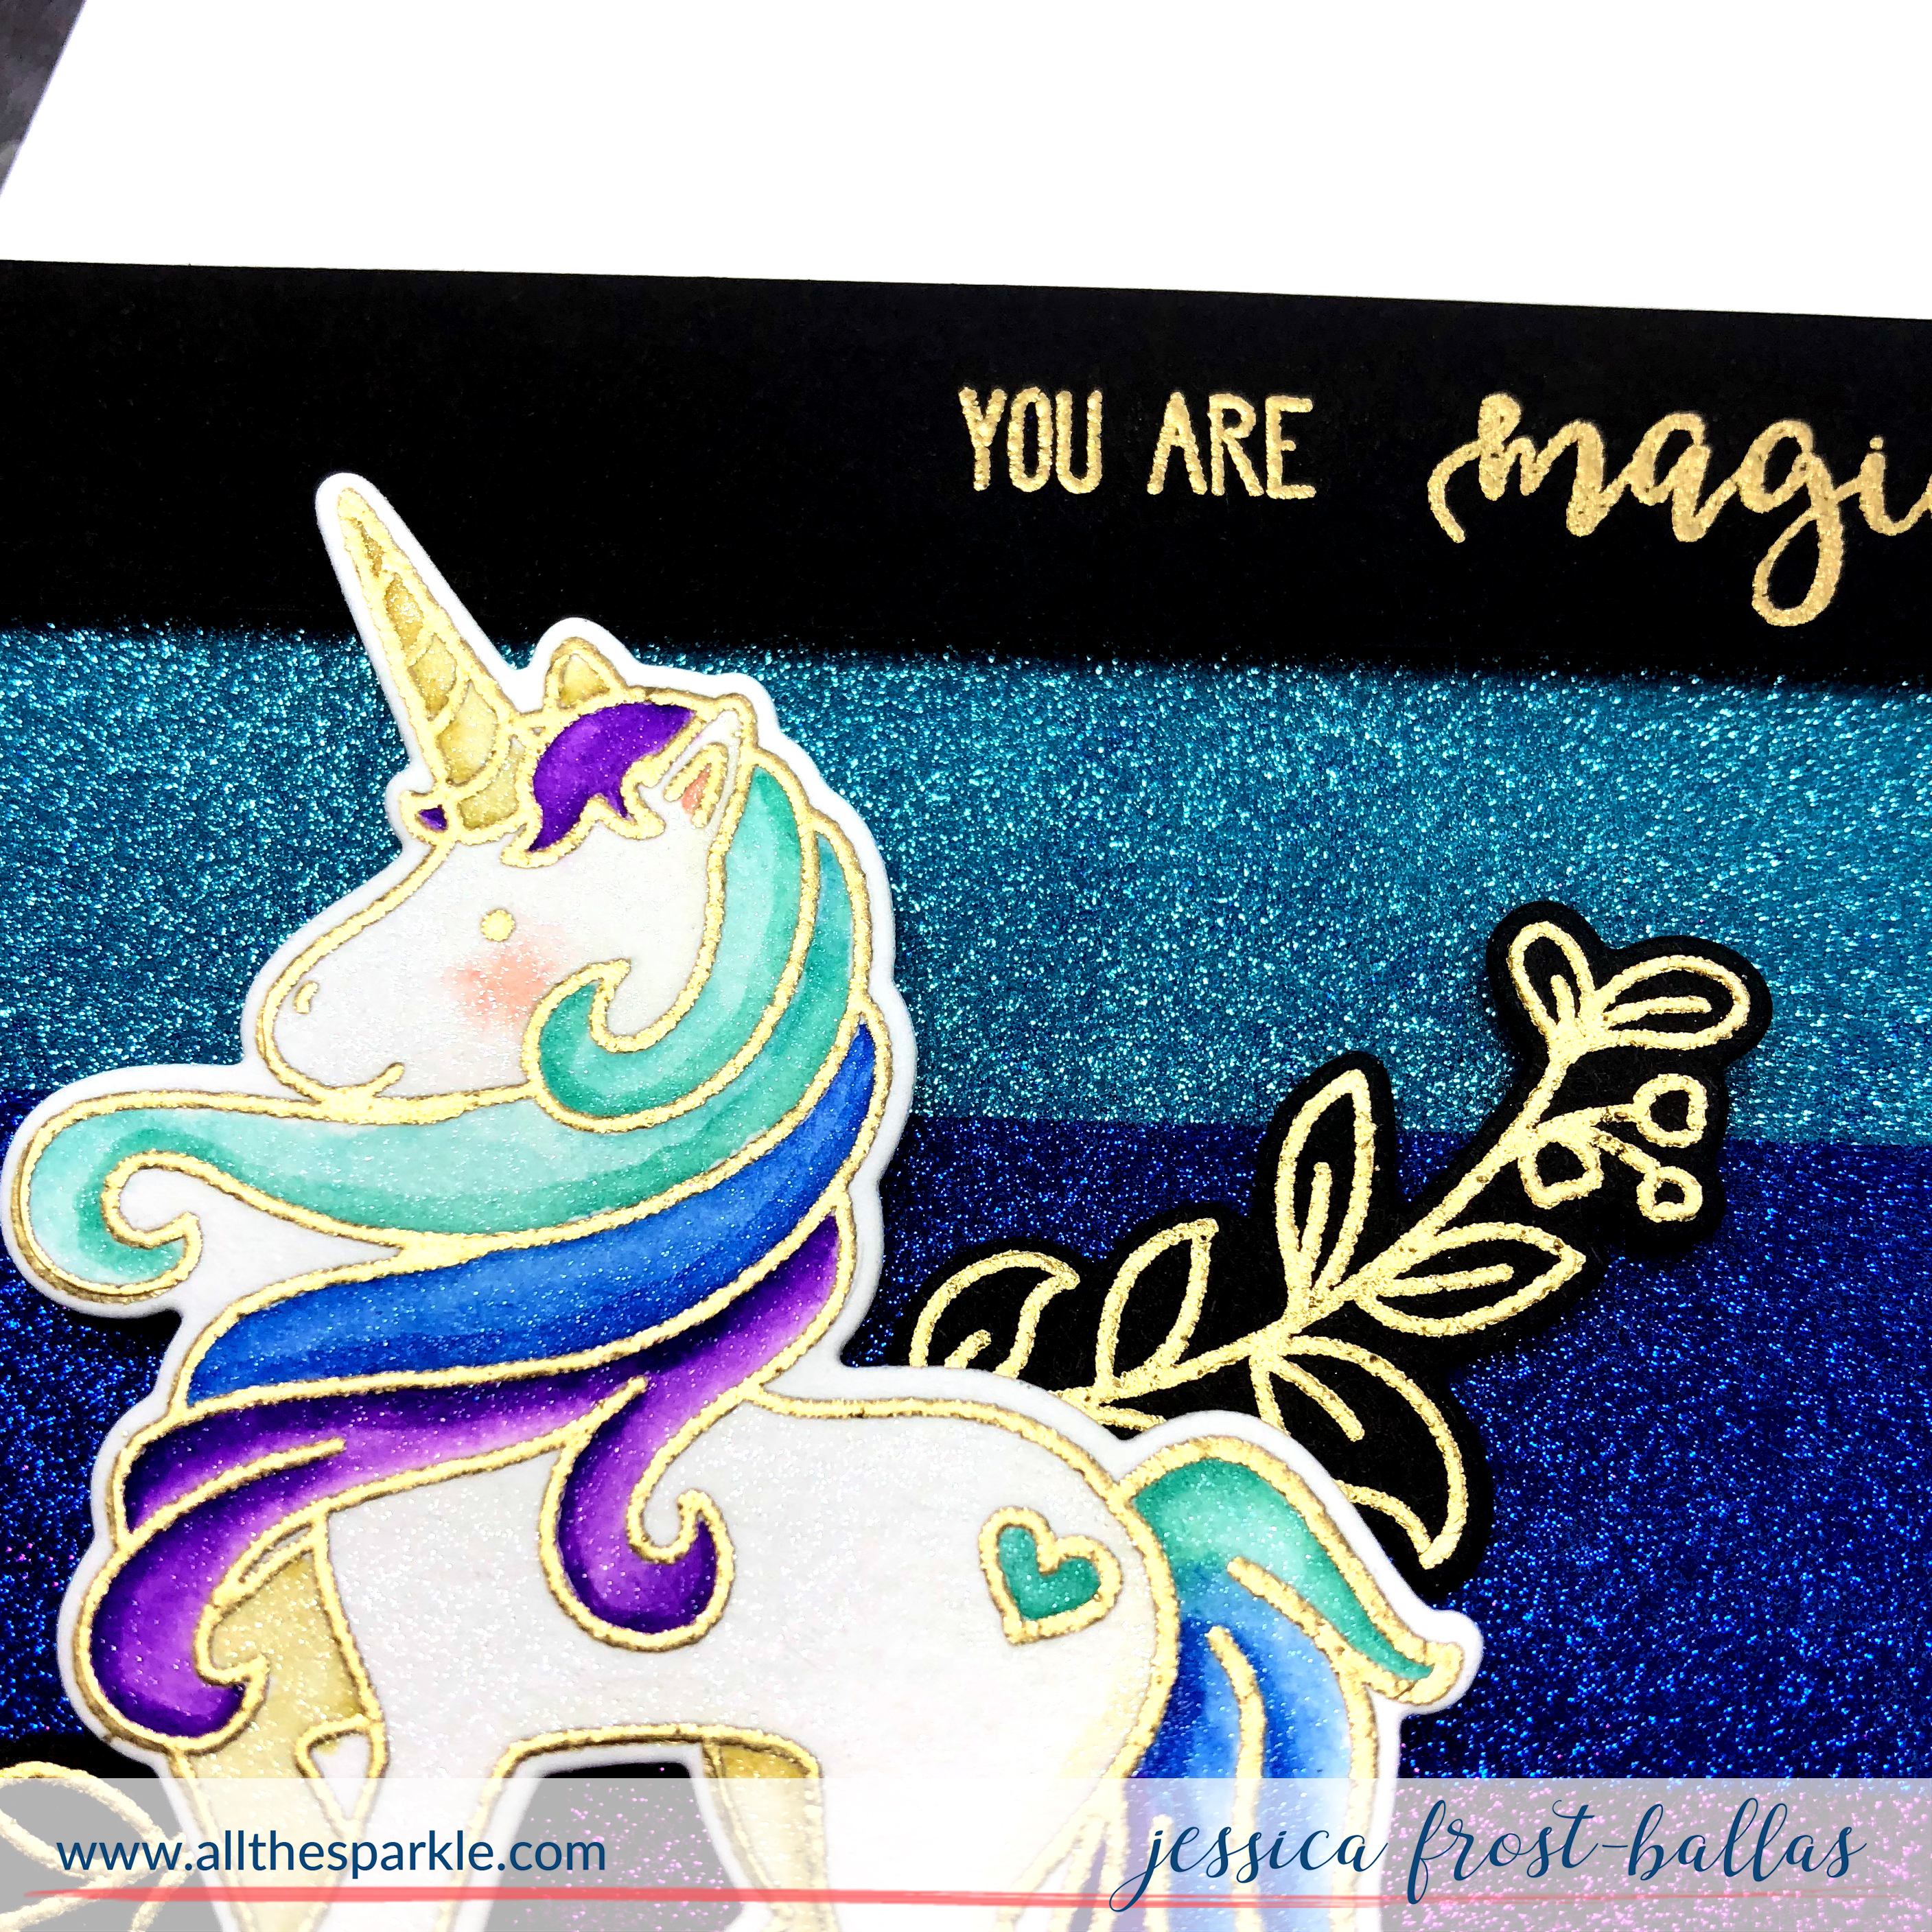 You Are Magical by Jessica Frost-Ballas